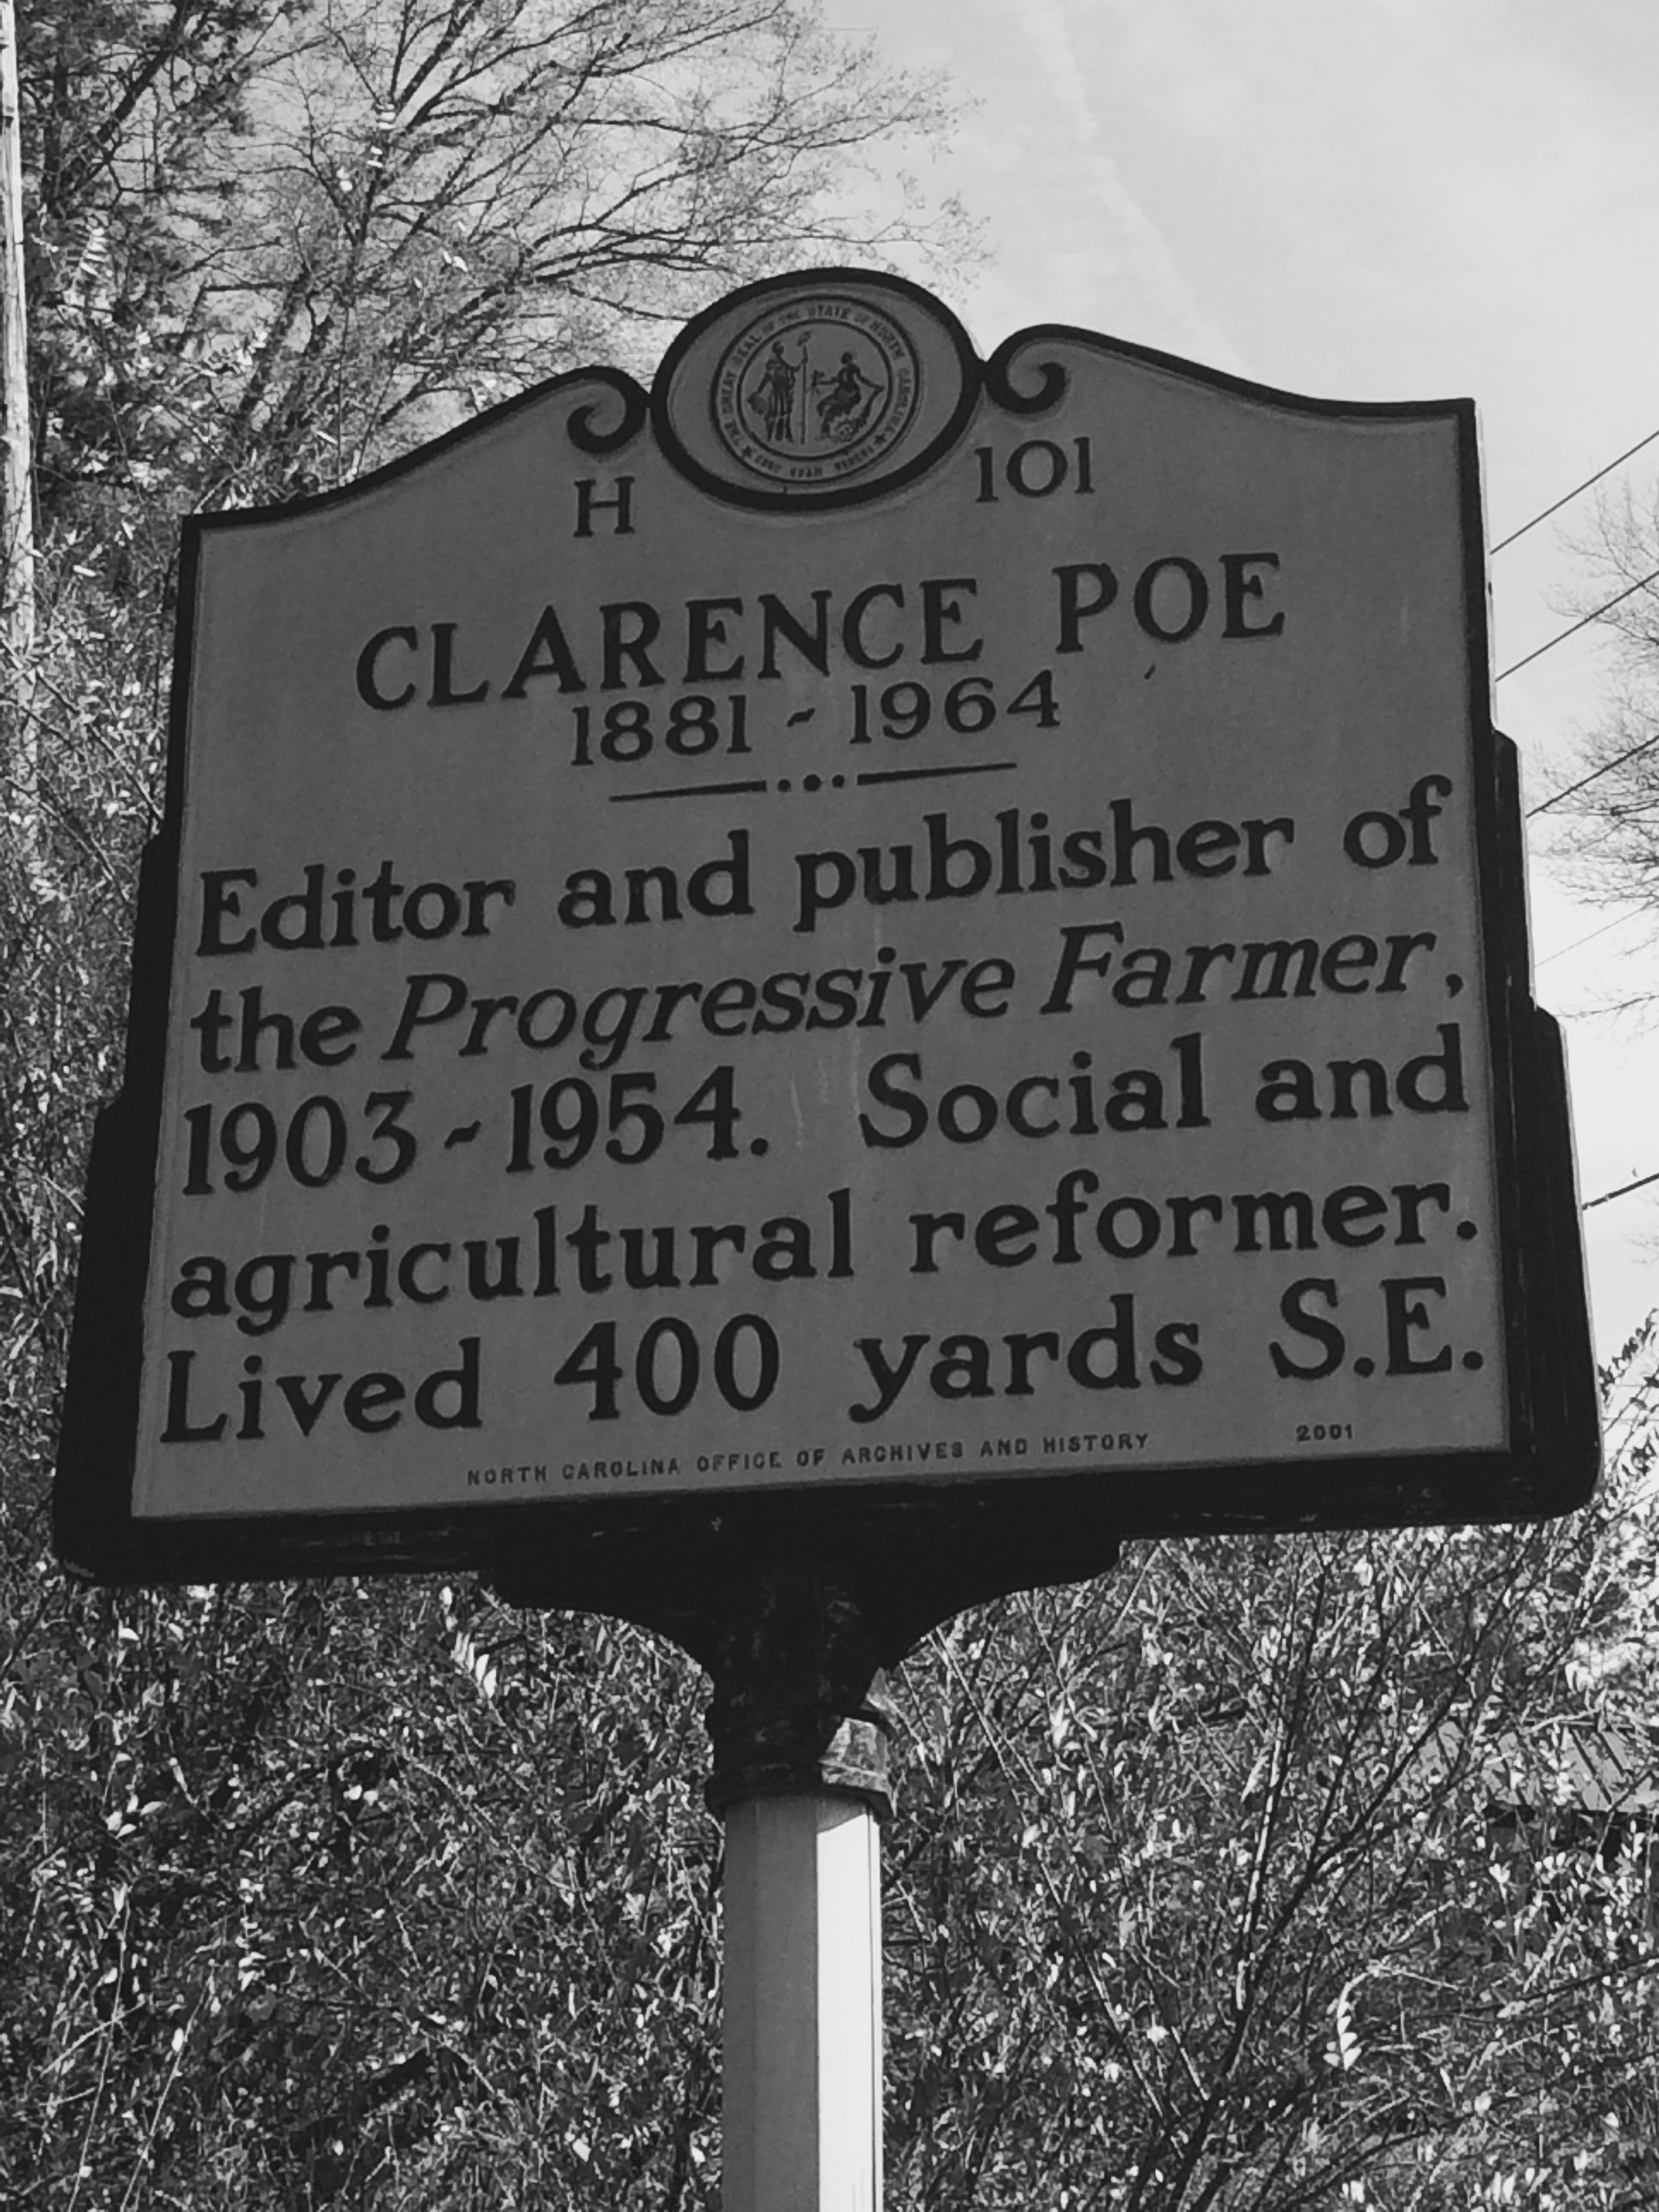 Historical marker near the Poe House, located off of New Bern Ave/Donald Ross Dr.